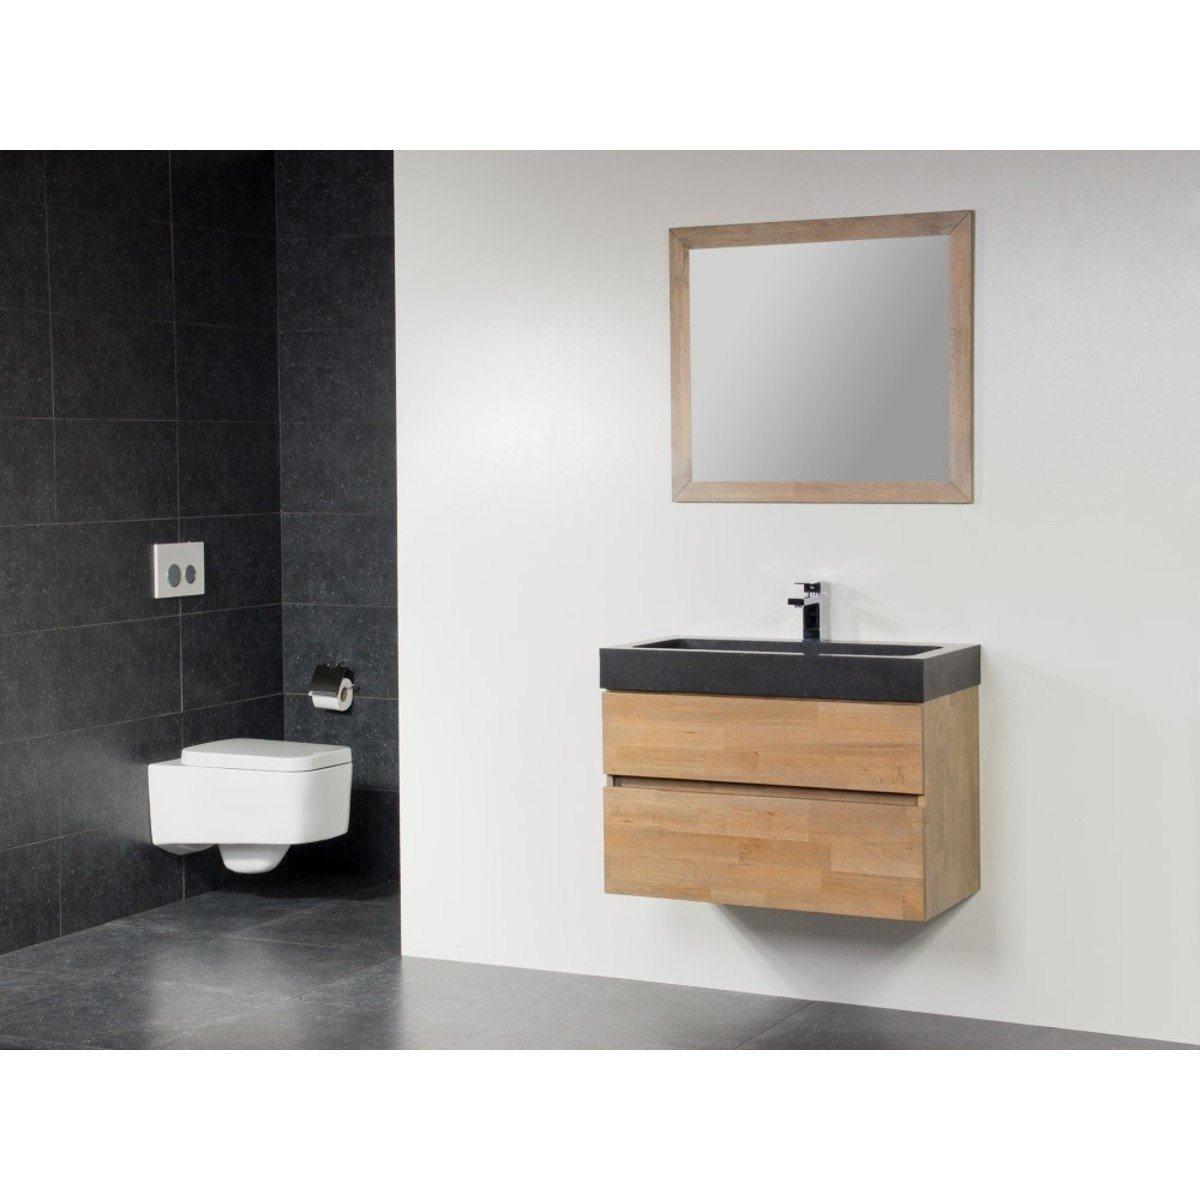 saniclass natural wood meuble salle de bain avec miroir 80cm suspendu grey wash avec vasque en. Black Bedroom Furniture Sets. Home Design Ideas